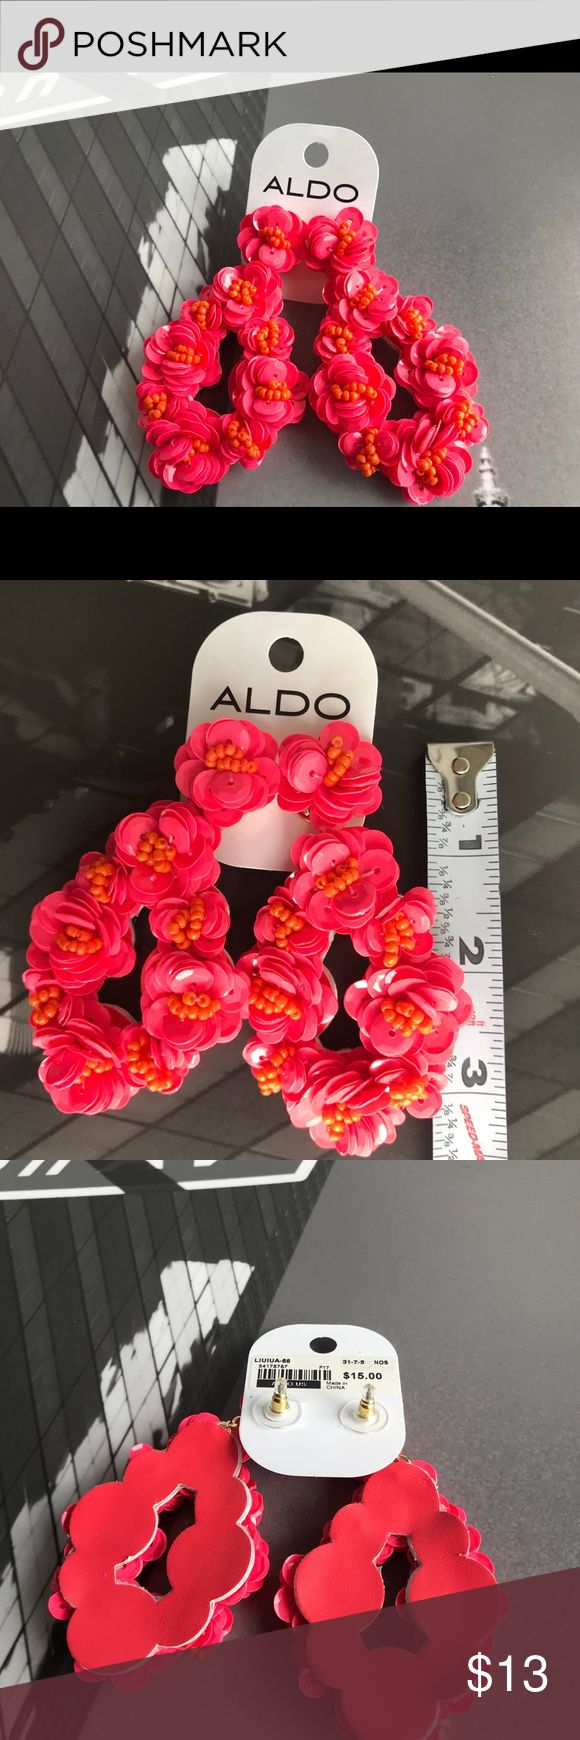 🙌🏾 Brand New Aldo Beaded Earrings #0264AO Brand new bright pink beaded earrings with a faux leather back. Liuiua-86 Bundle and Save 10%#aldoaccessories #pinkearrings #earrings #aldo #women #earrings Aldo Jewelry Earrings